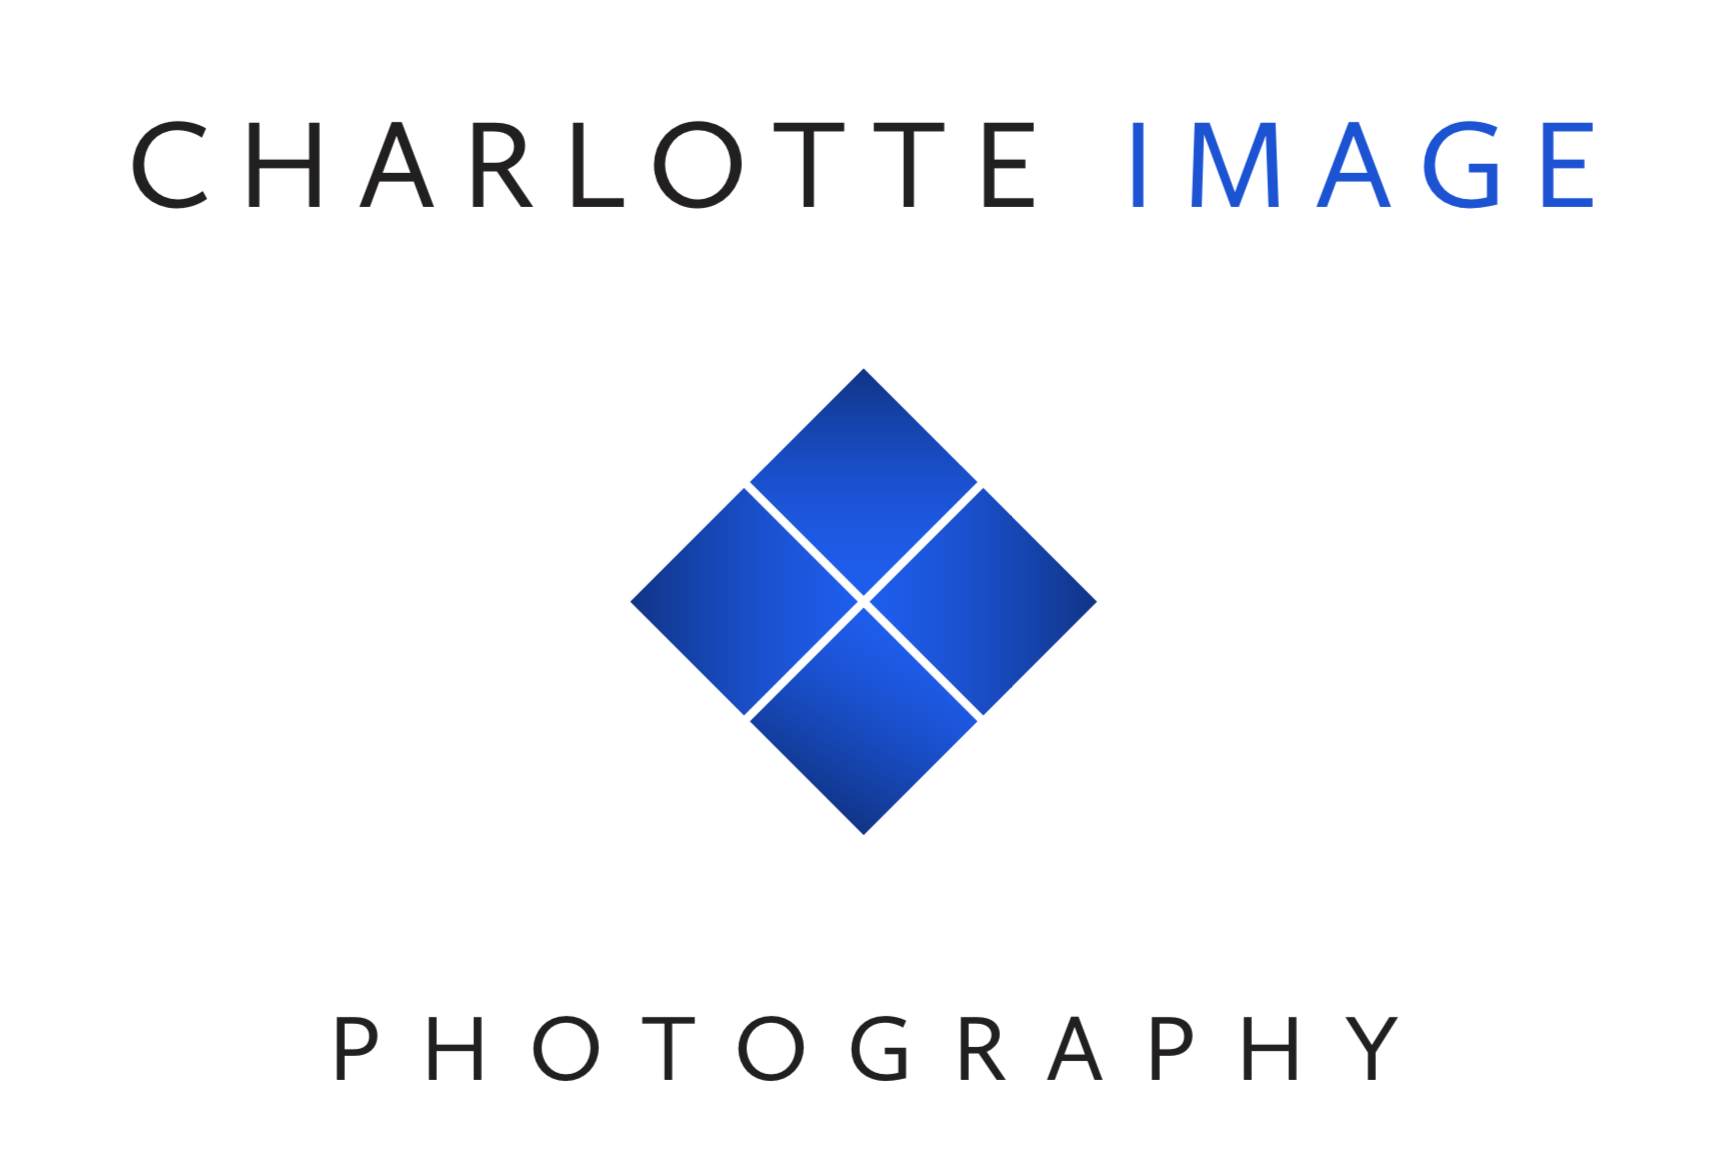 Charlotte Image Photography